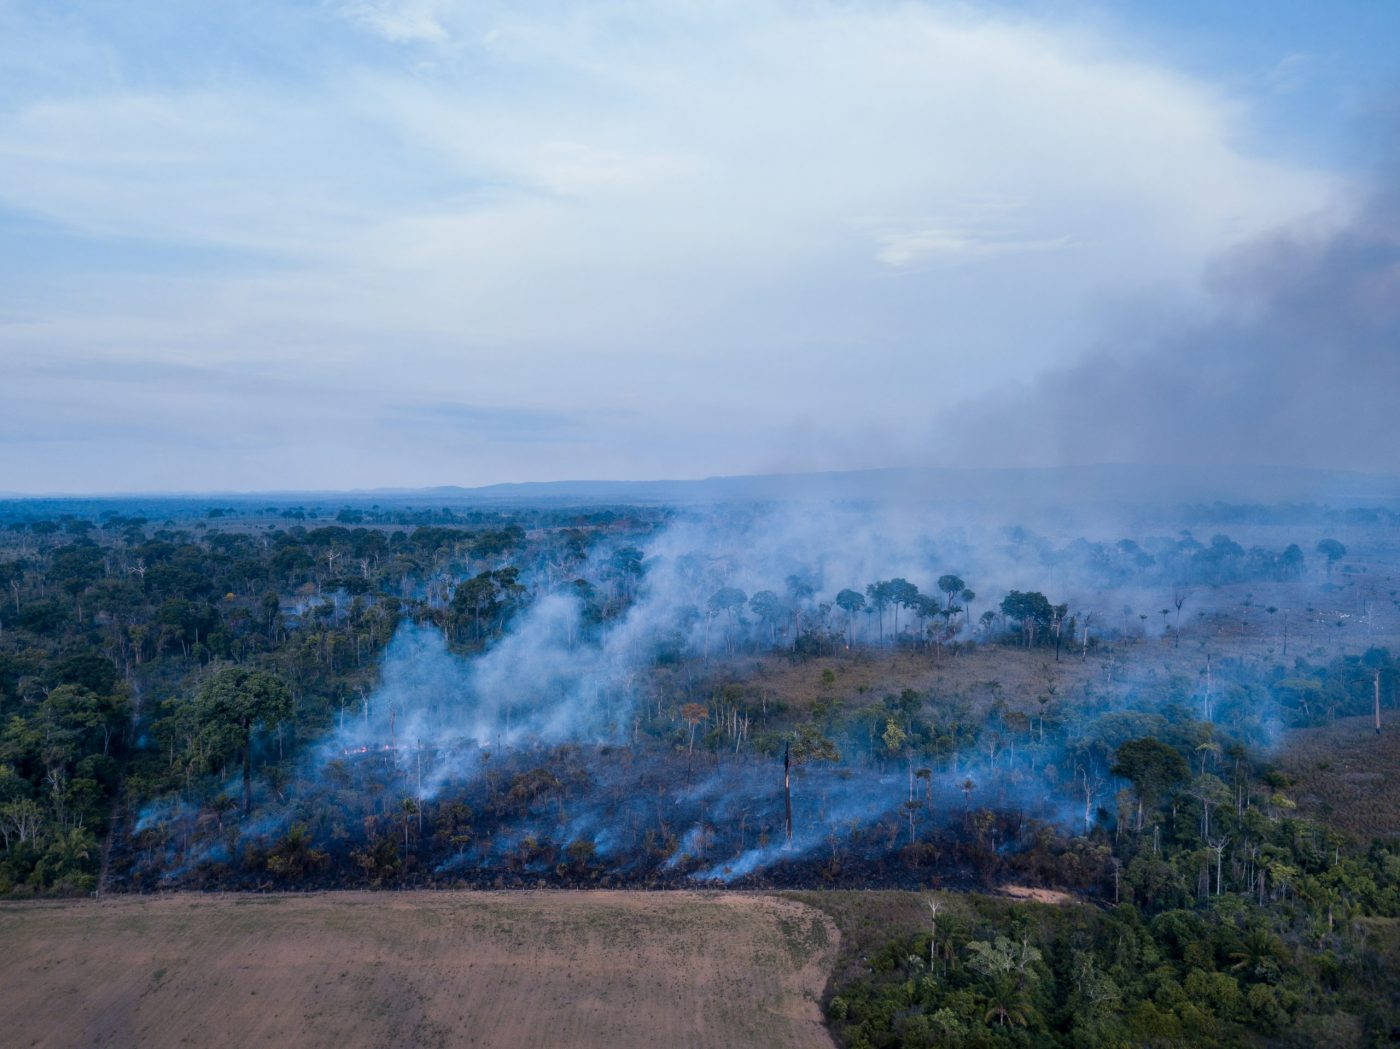 Burning of the Amazon rainforest at dusk to increase livestock grazing area and agriculture activities Area already deforested in the foreground.